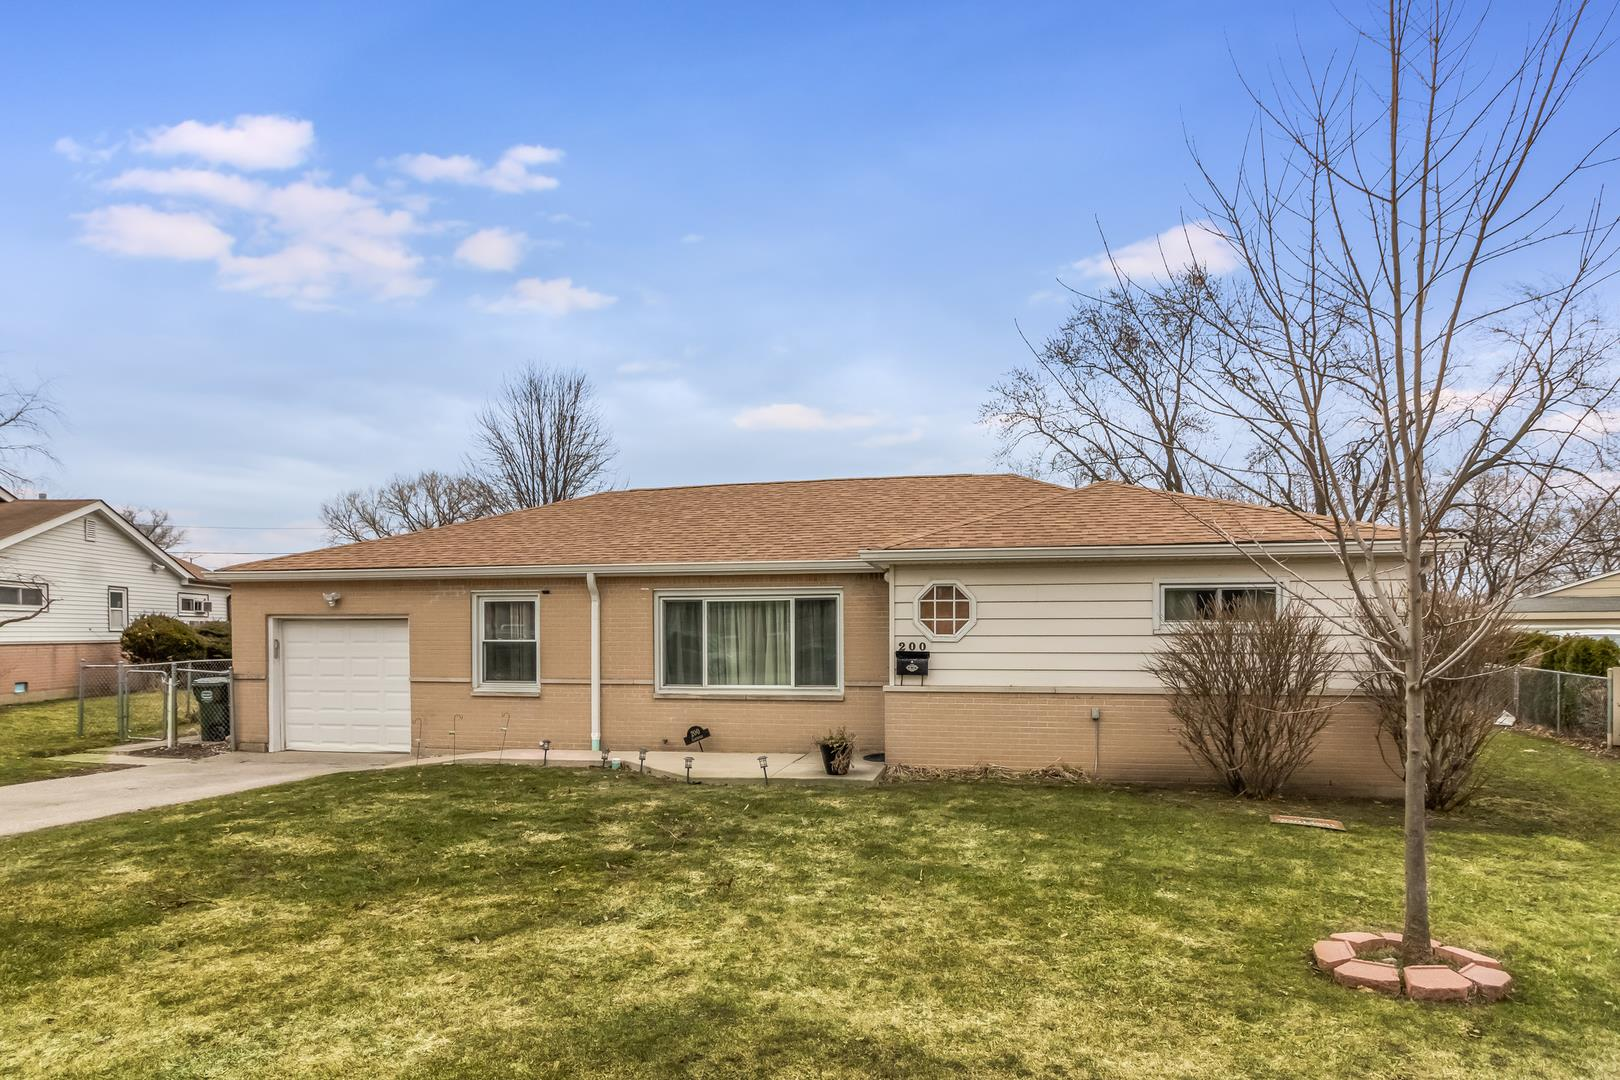 200 Carthage Lane, Hoffman Estates, IL 60169 - #: 11023199